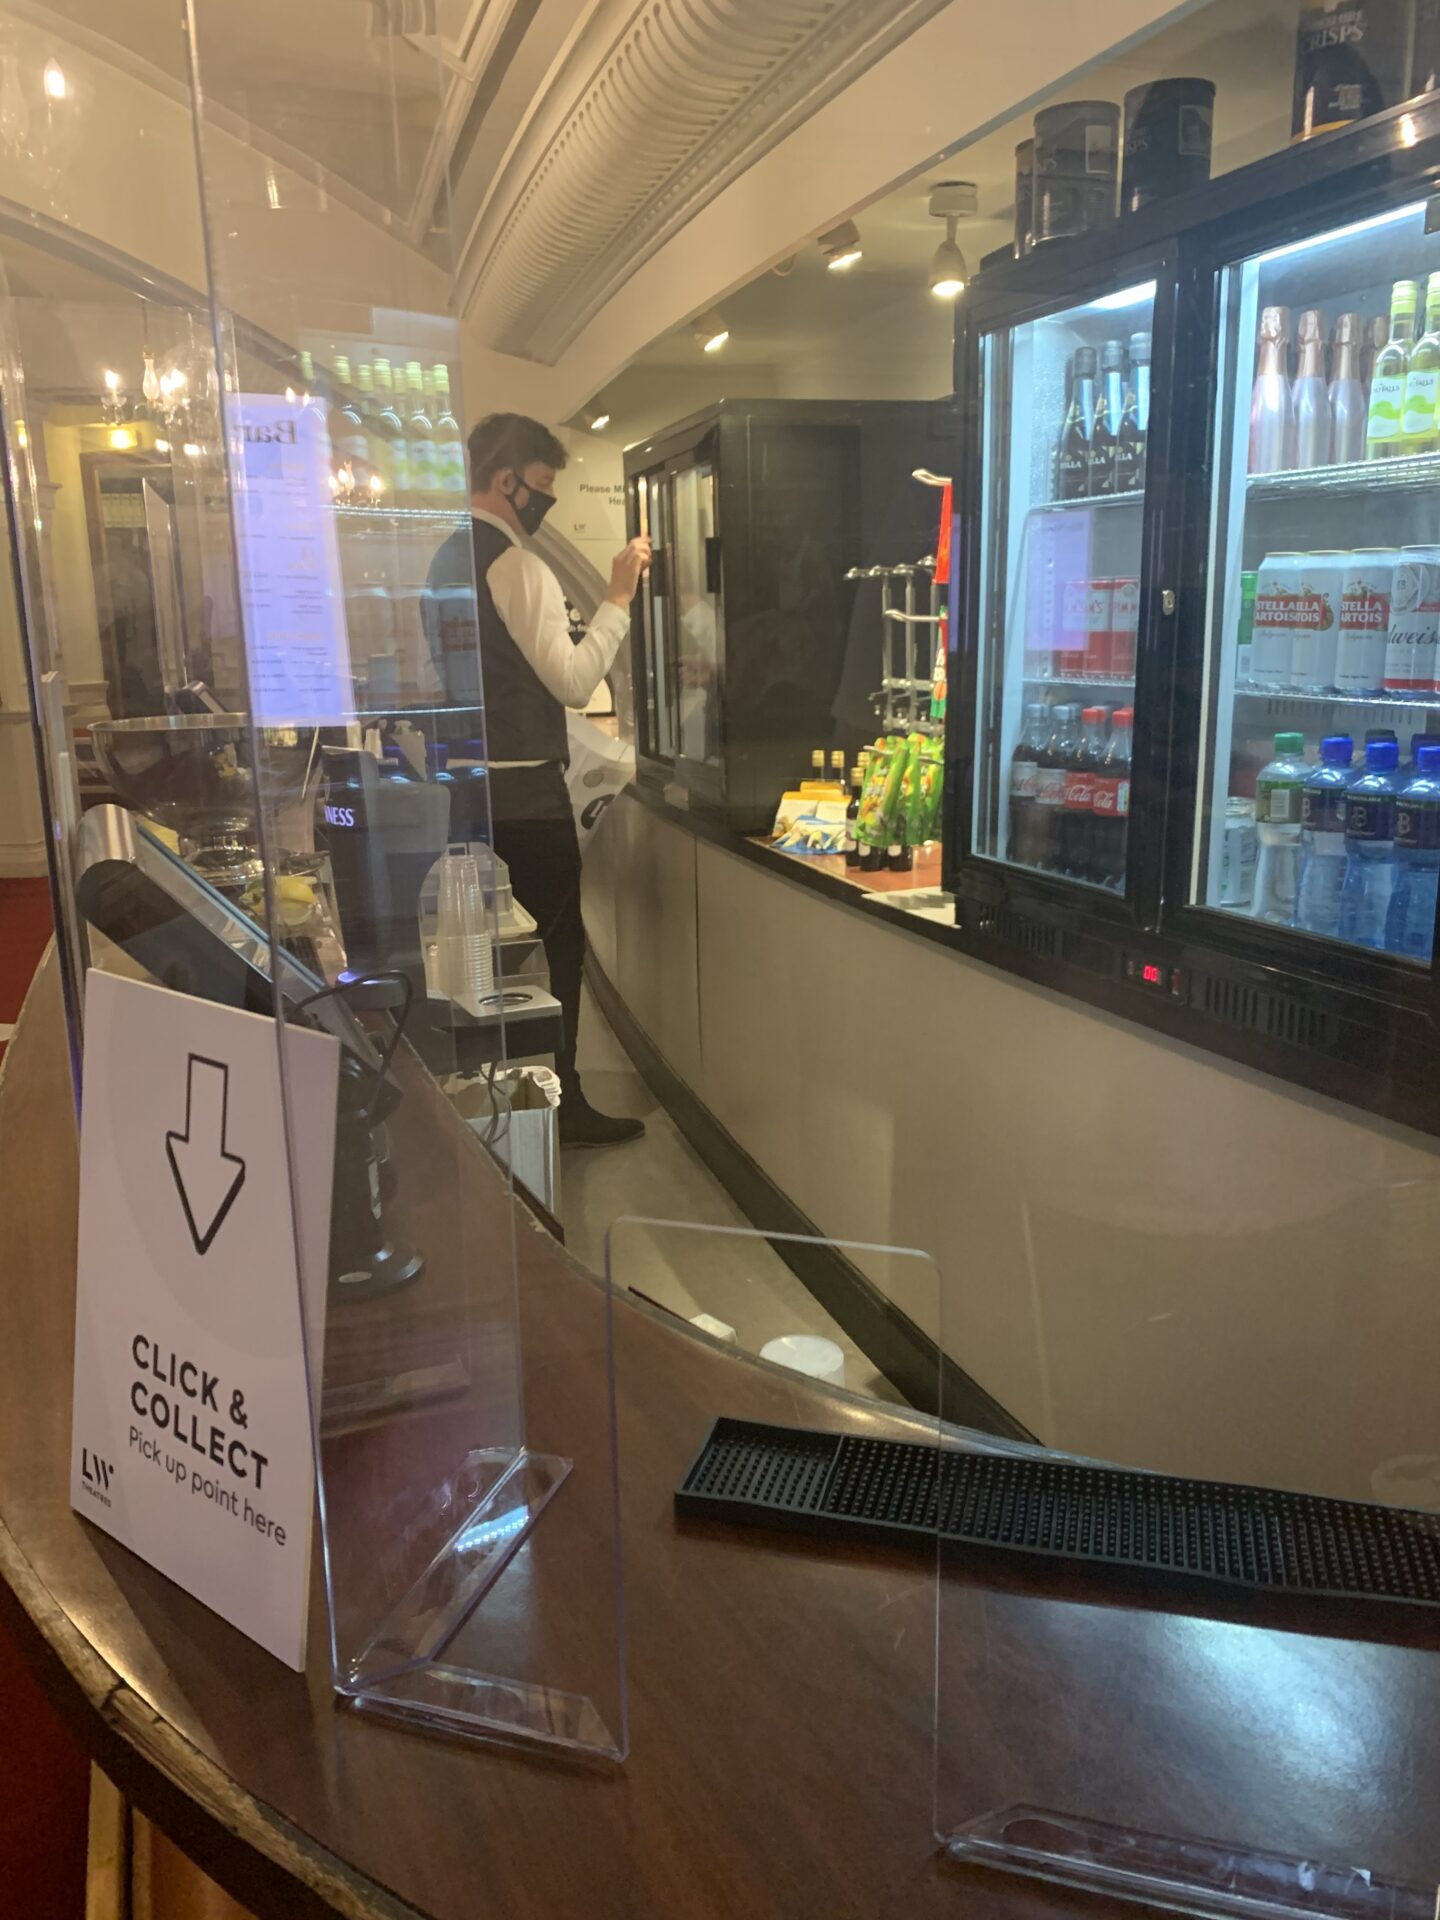 Click and collect refreshments - socially distanced theatre